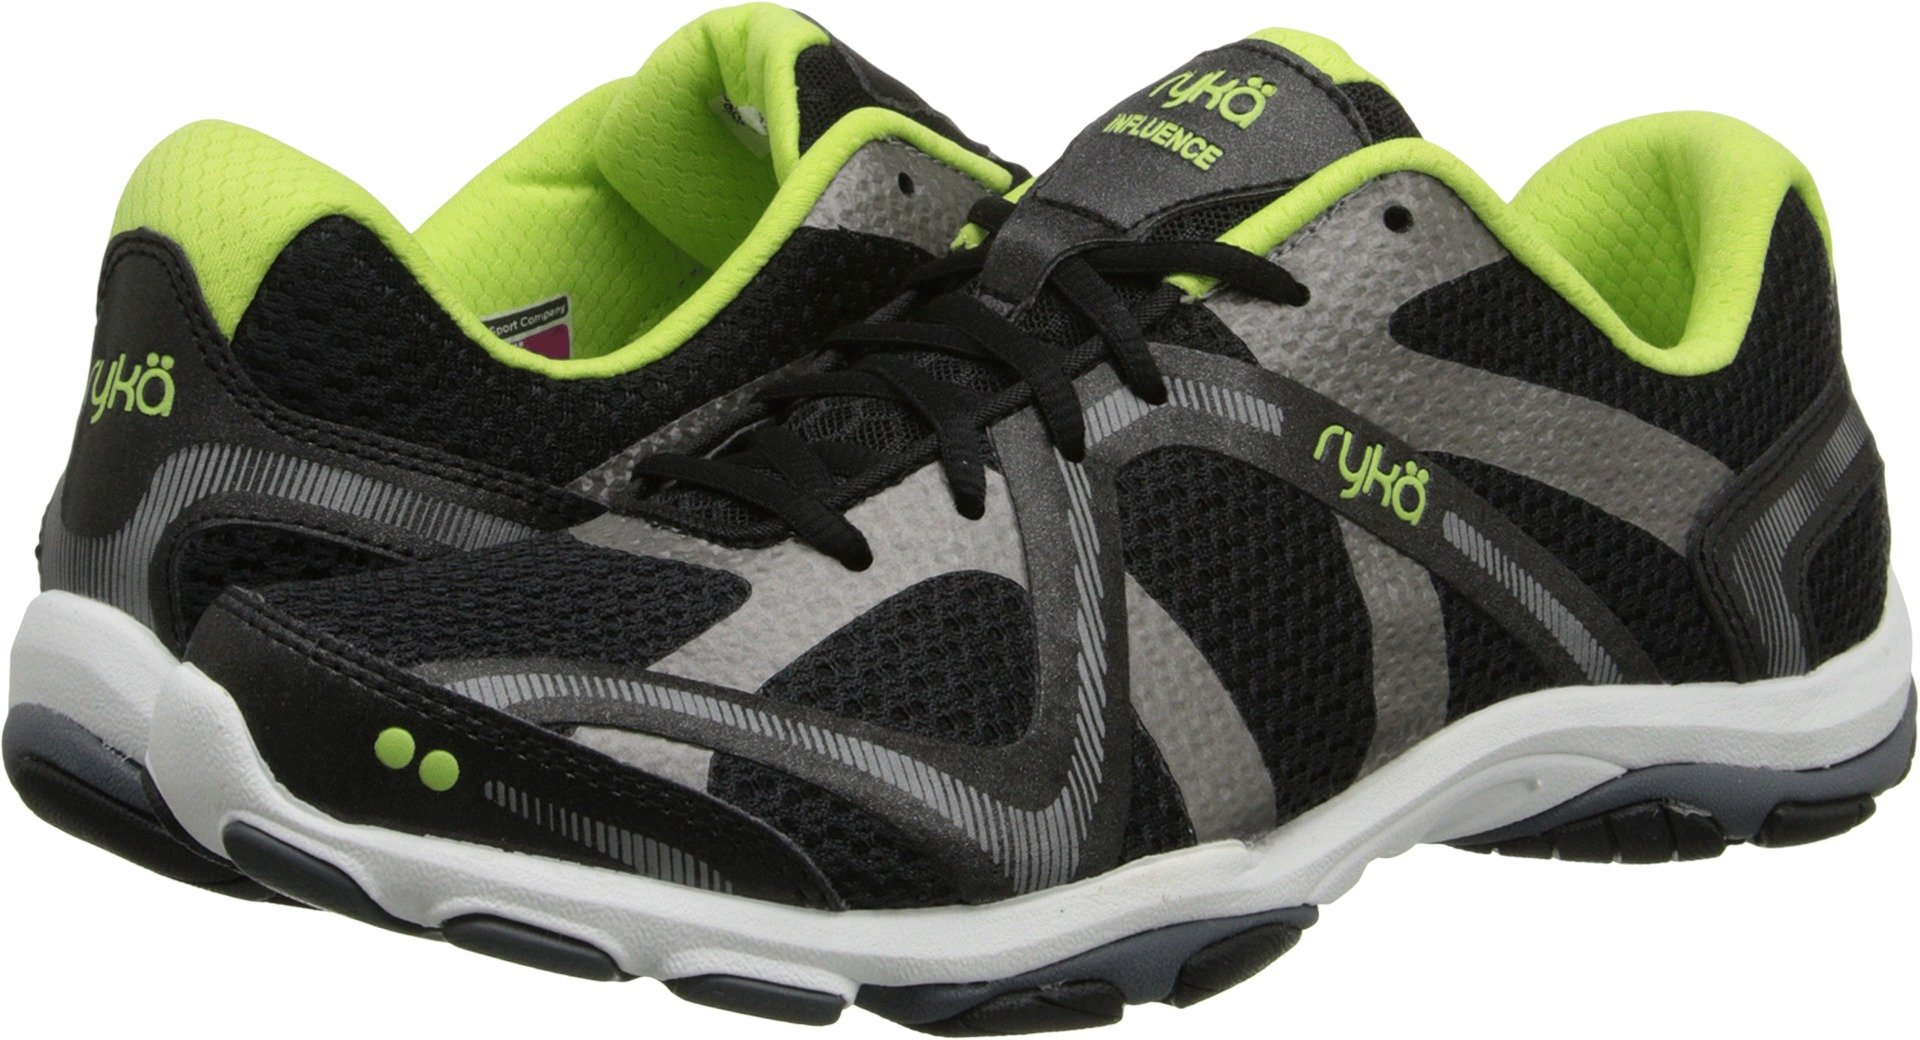 Ryka Women's Influence Black/Sharp Green/Forge Grey/Met Iron Grey 9 D US by Ryka (Image #1)